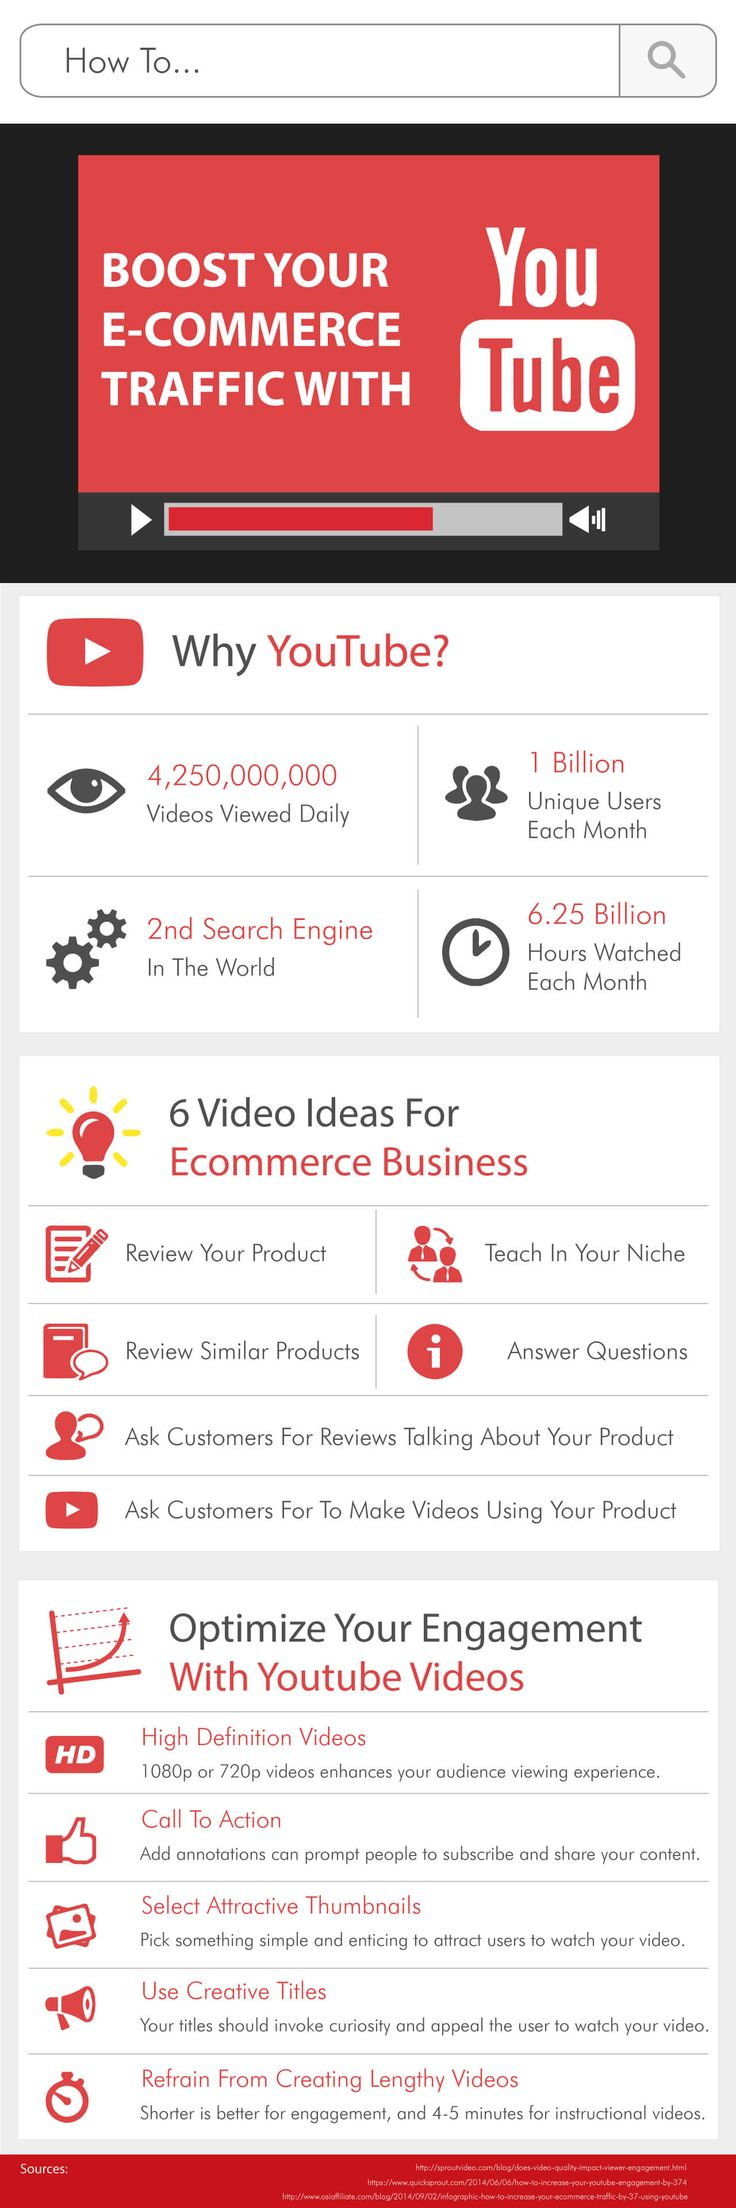 62 best Business Ideas Pictured images on Pinterest | Business ideas ...